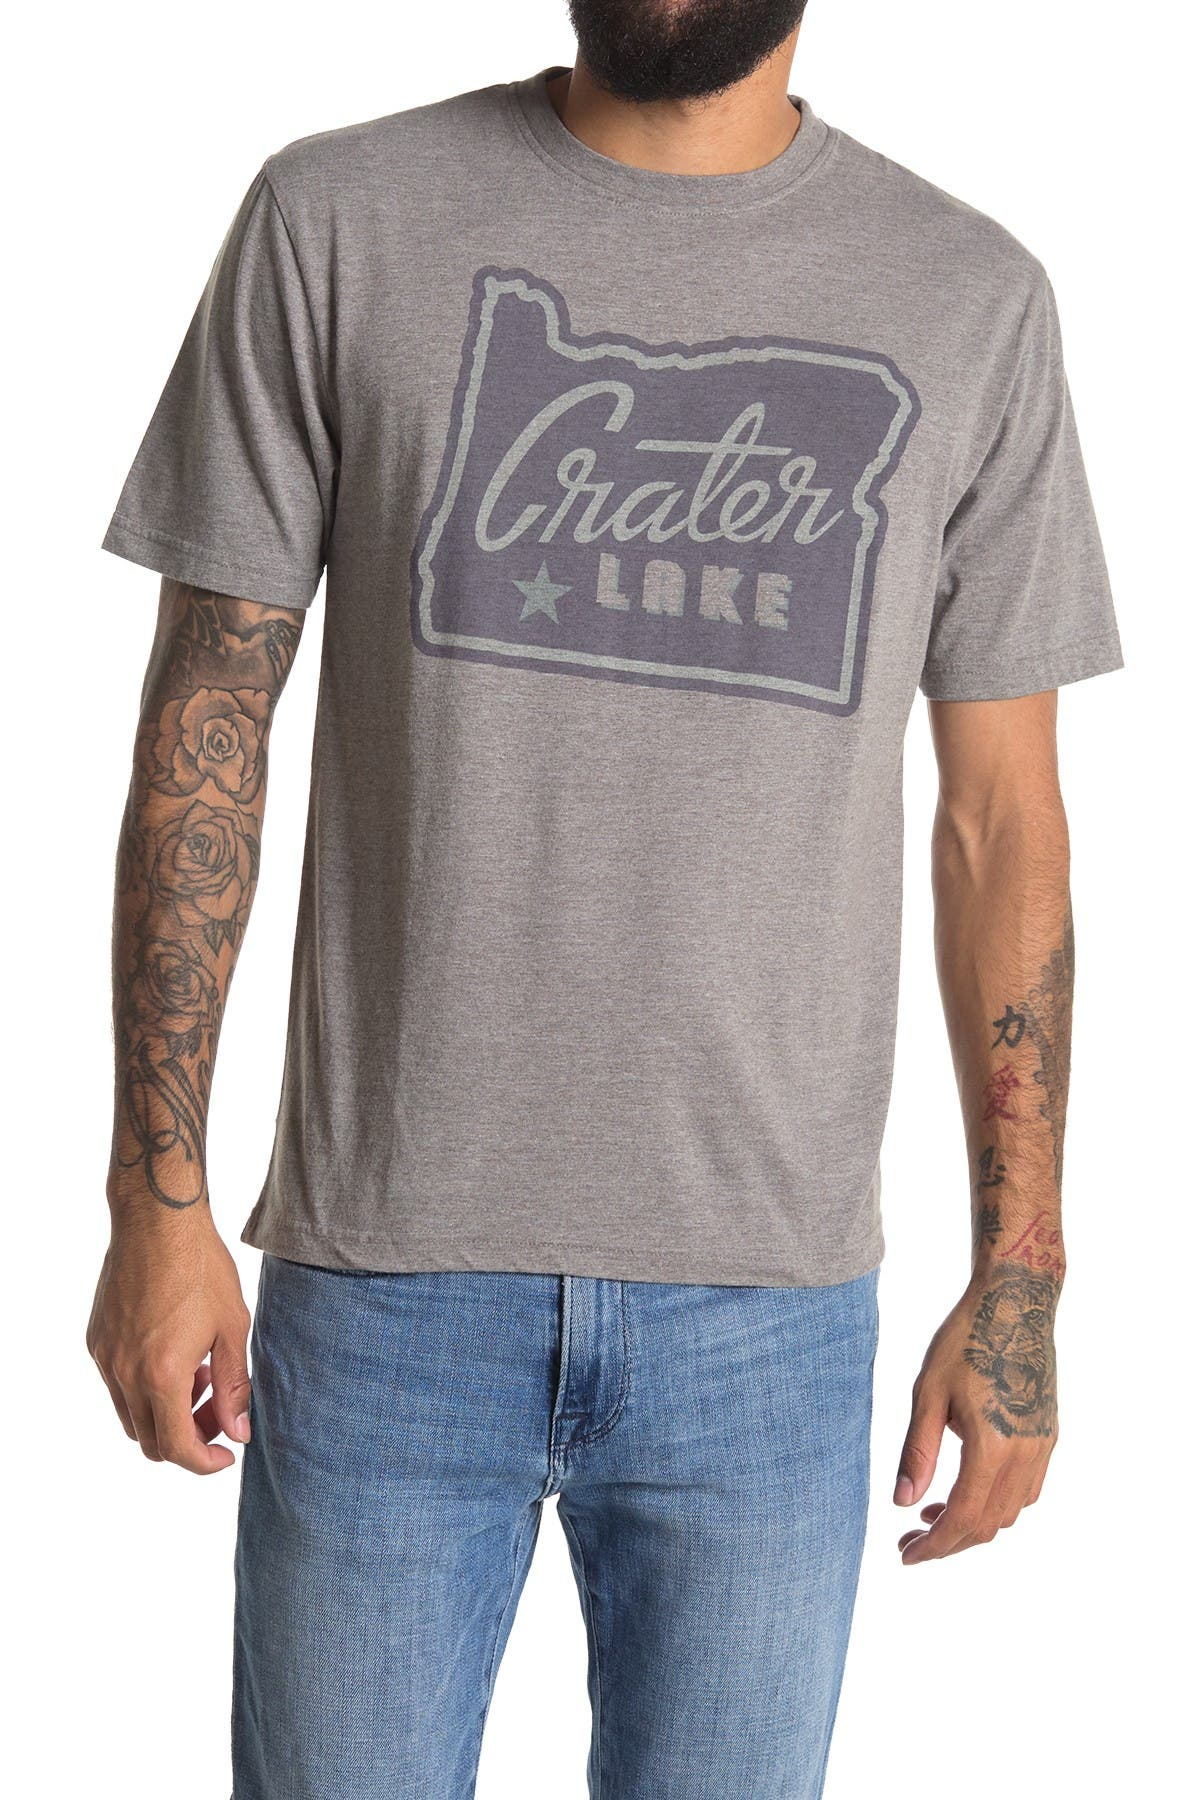 Image of American Needle Vintage Crater Lake Crew Neck T-Shirt